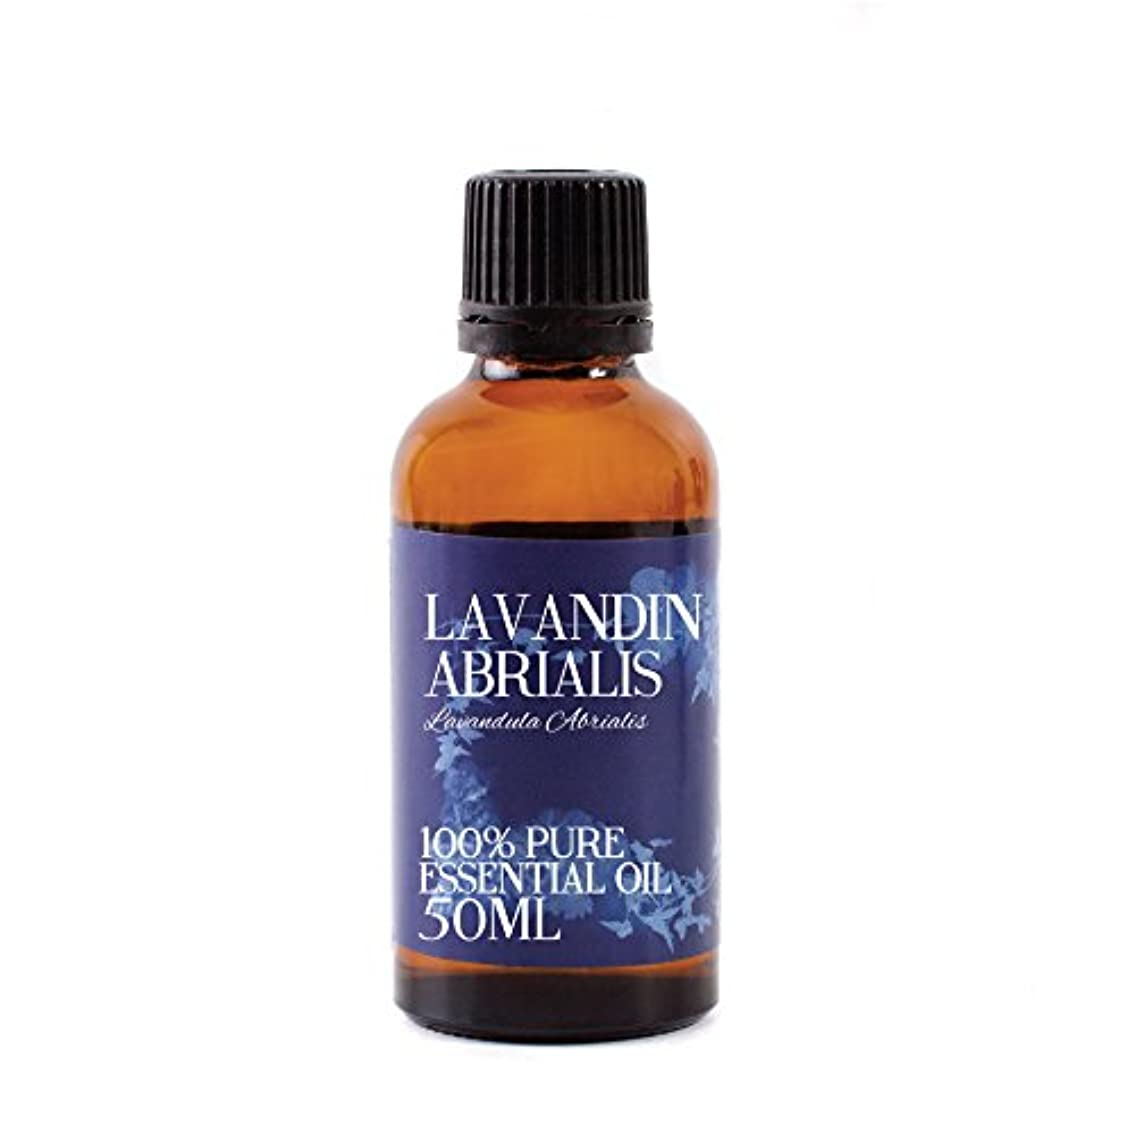 Mystic Moments | Lavandin Abrialis Essential Oil - 50ml - 100% Pure